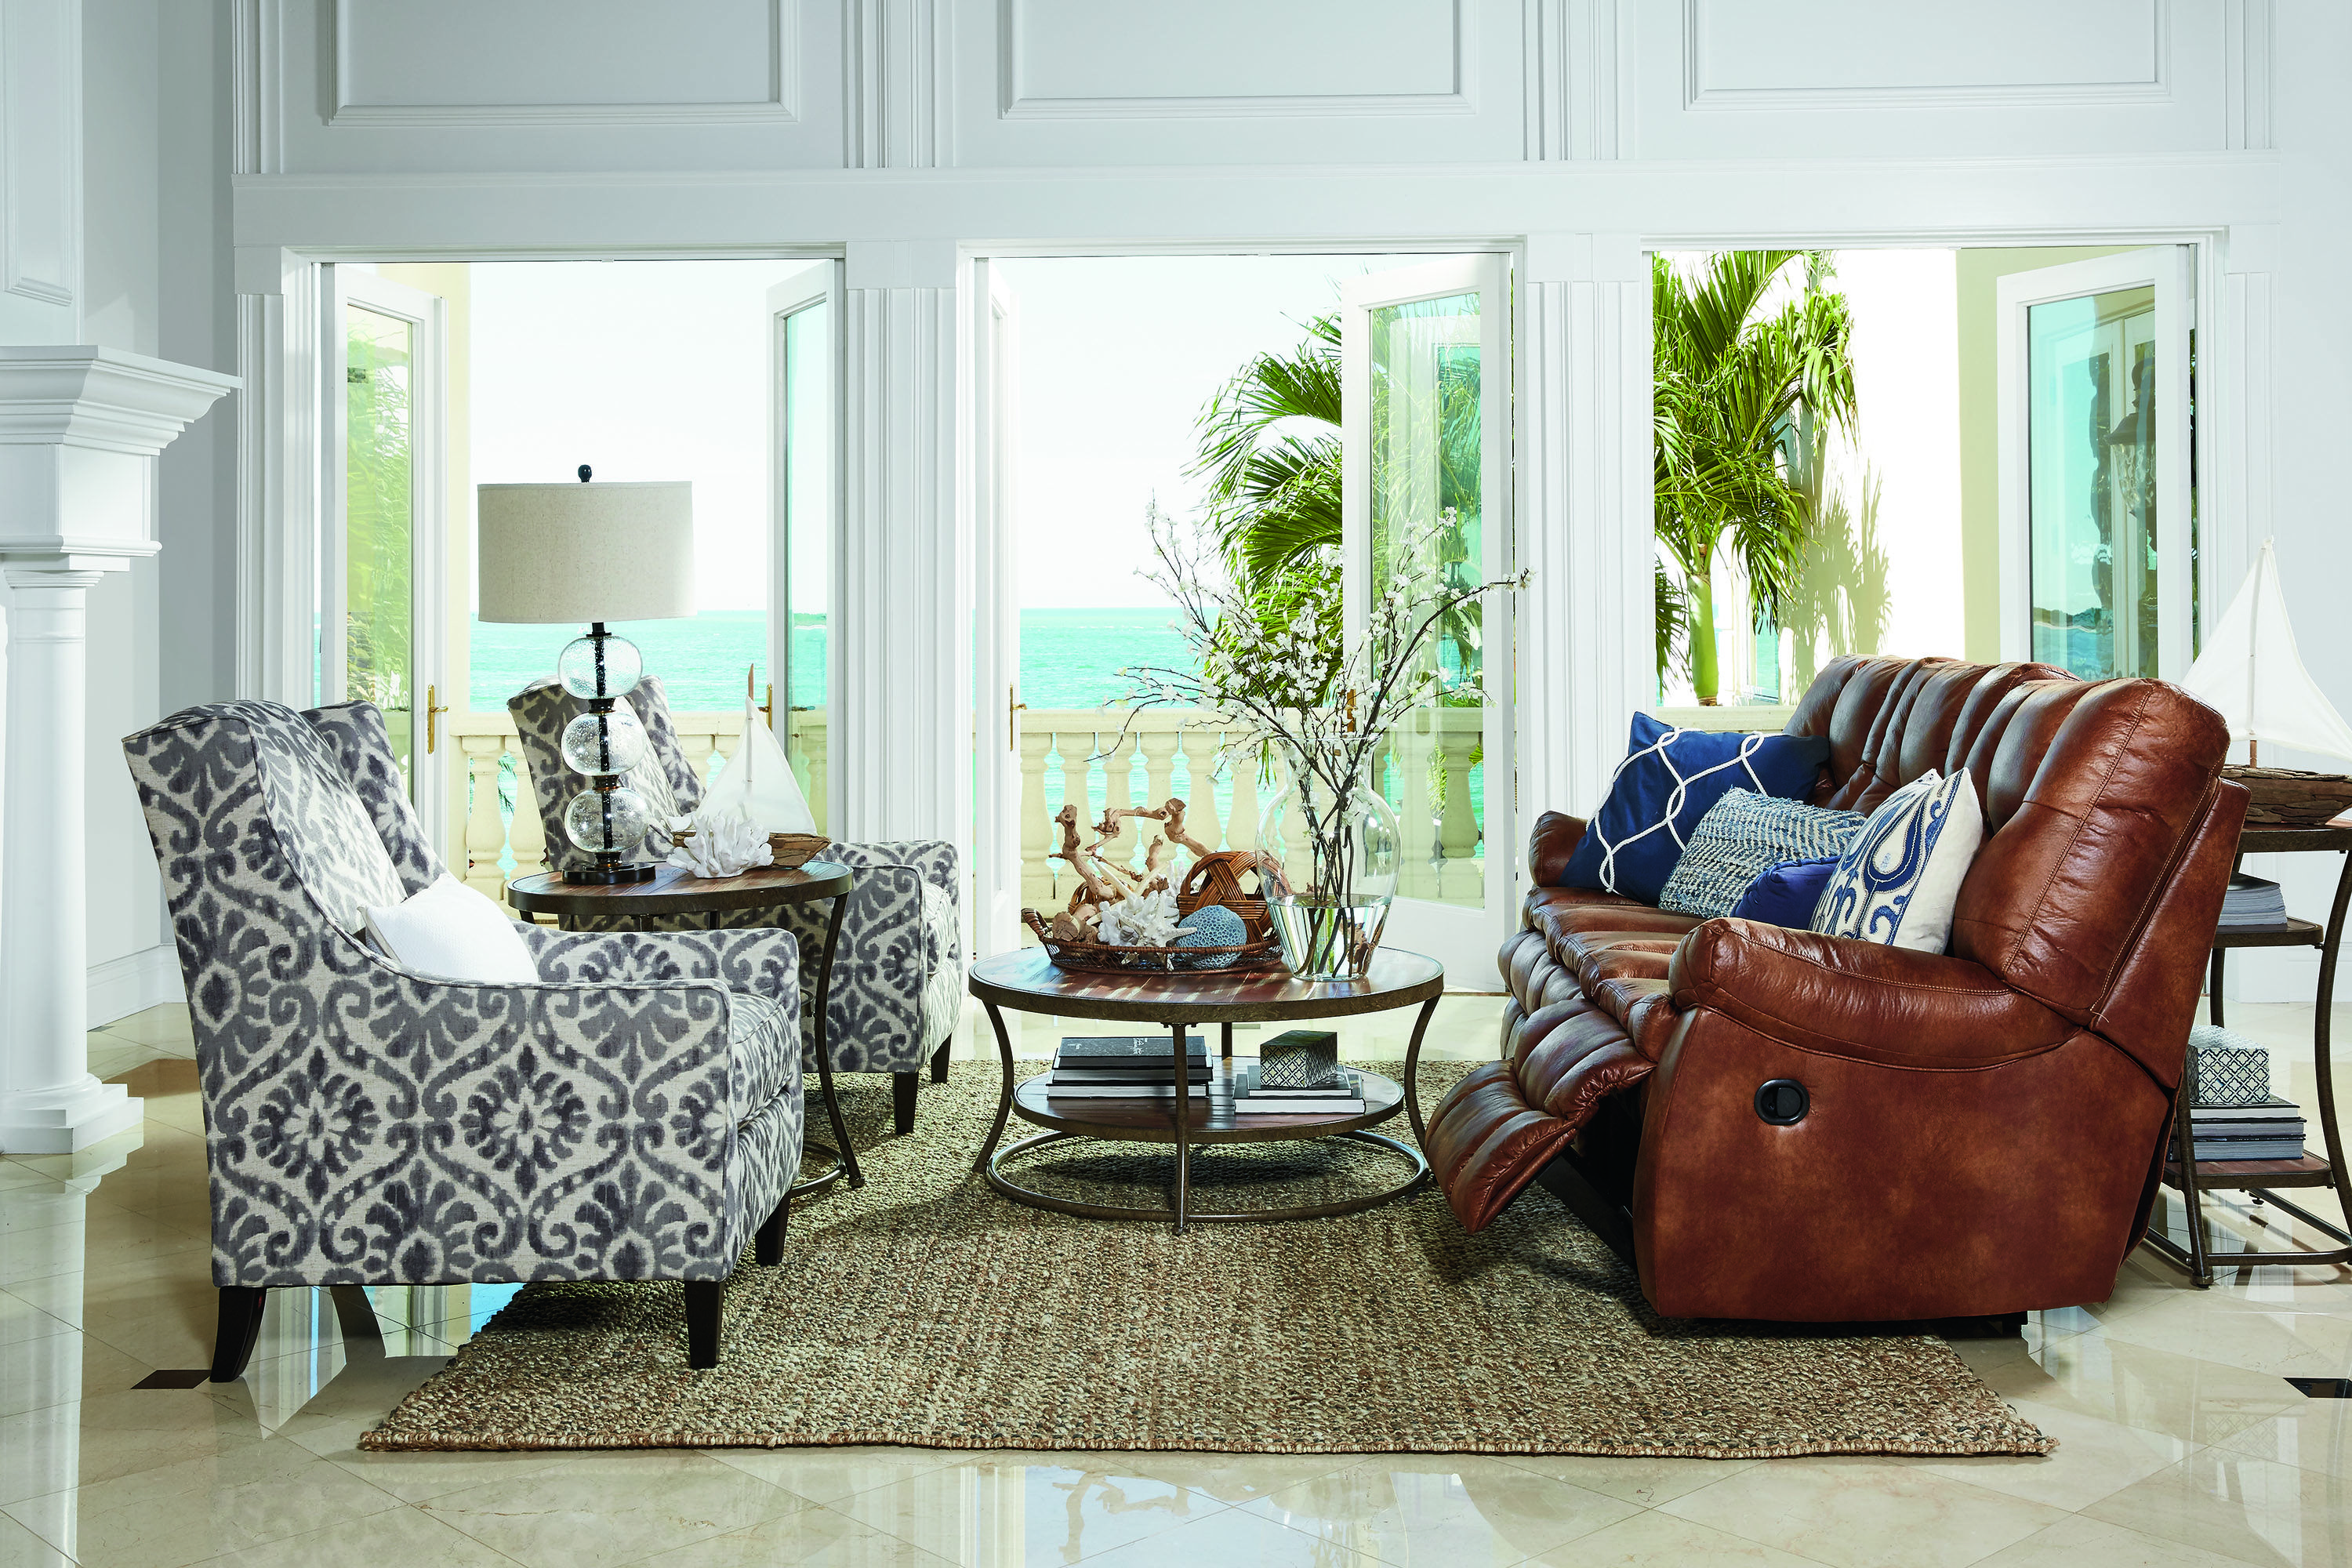 We are loving this reclining sofa paired with the accent chairs